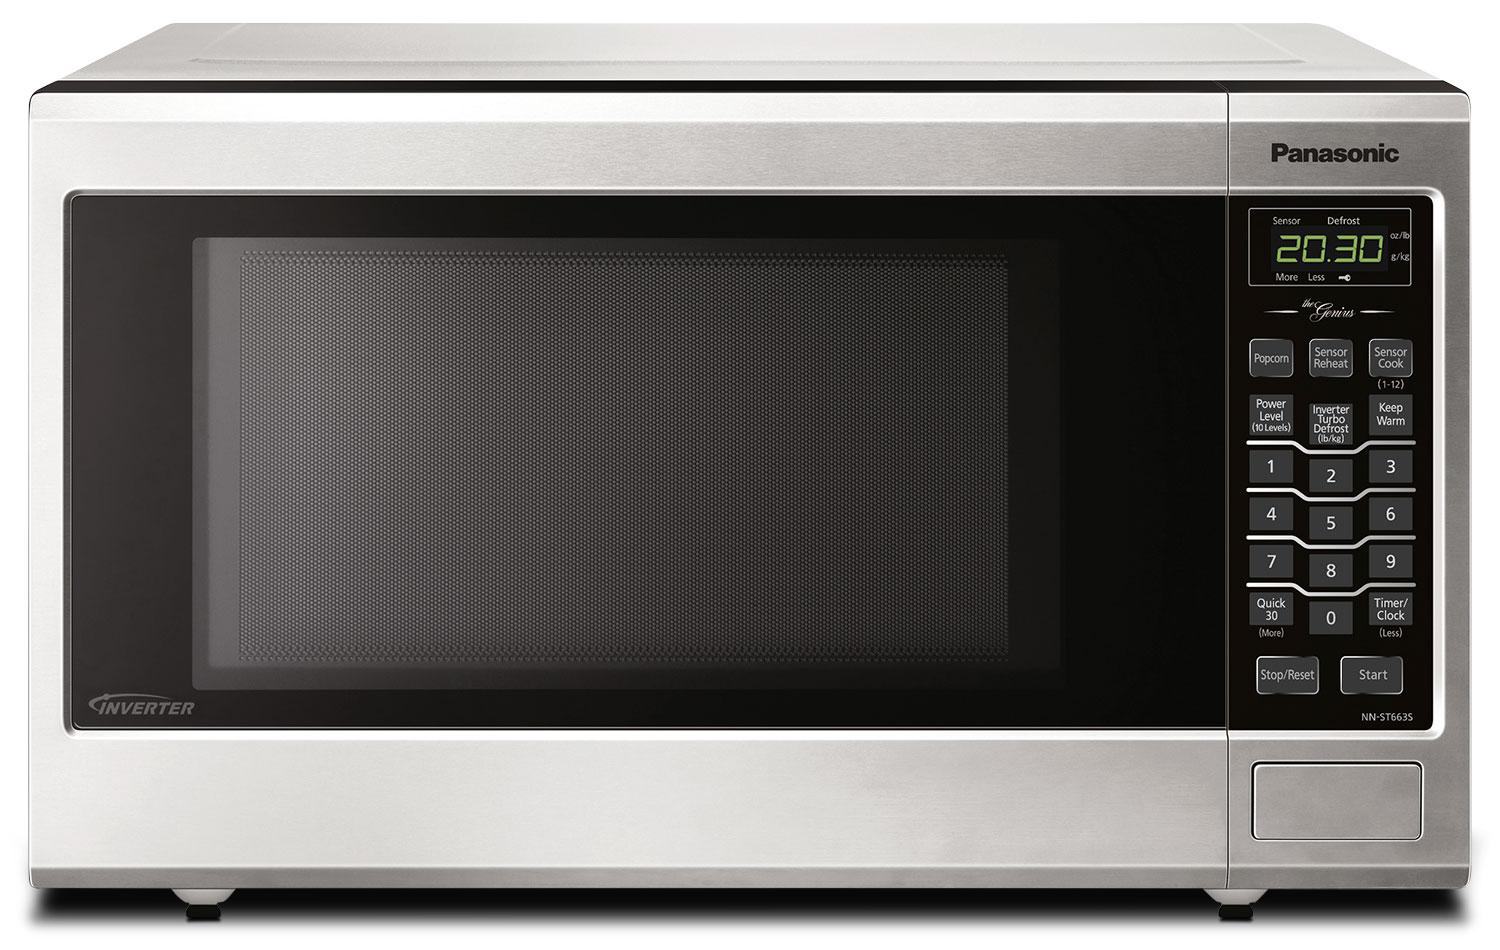 Cooking Products - Panasonic 1.2 Cu. Ft. Countertop Microwave – NNST663S